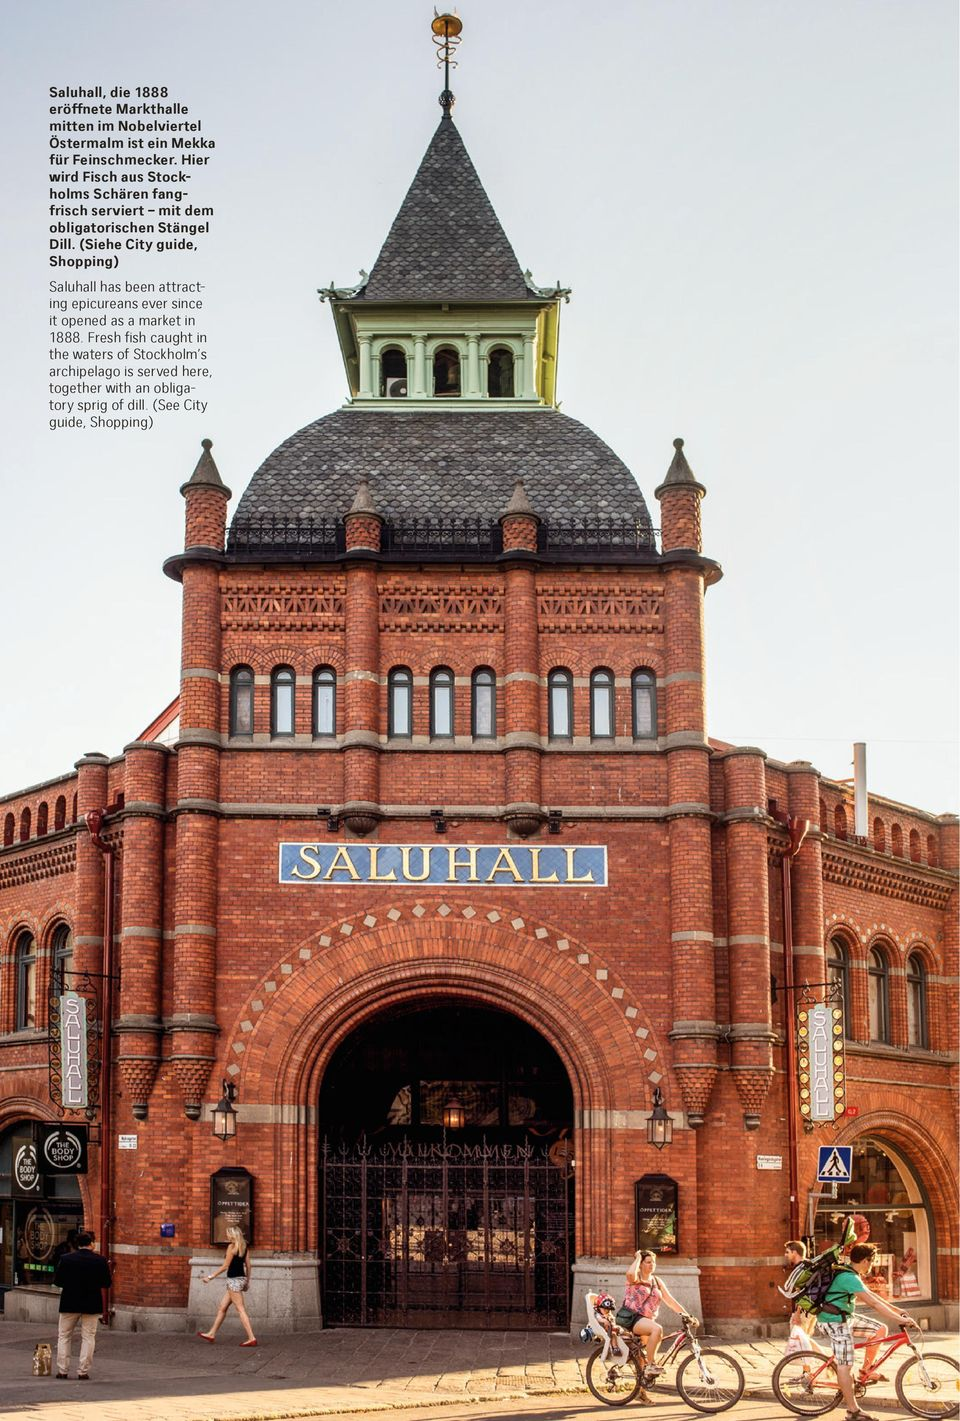 (Siehe City guide, Shopping) Saluhall has been attracting epicureans ever since it opened as a market in 1888.